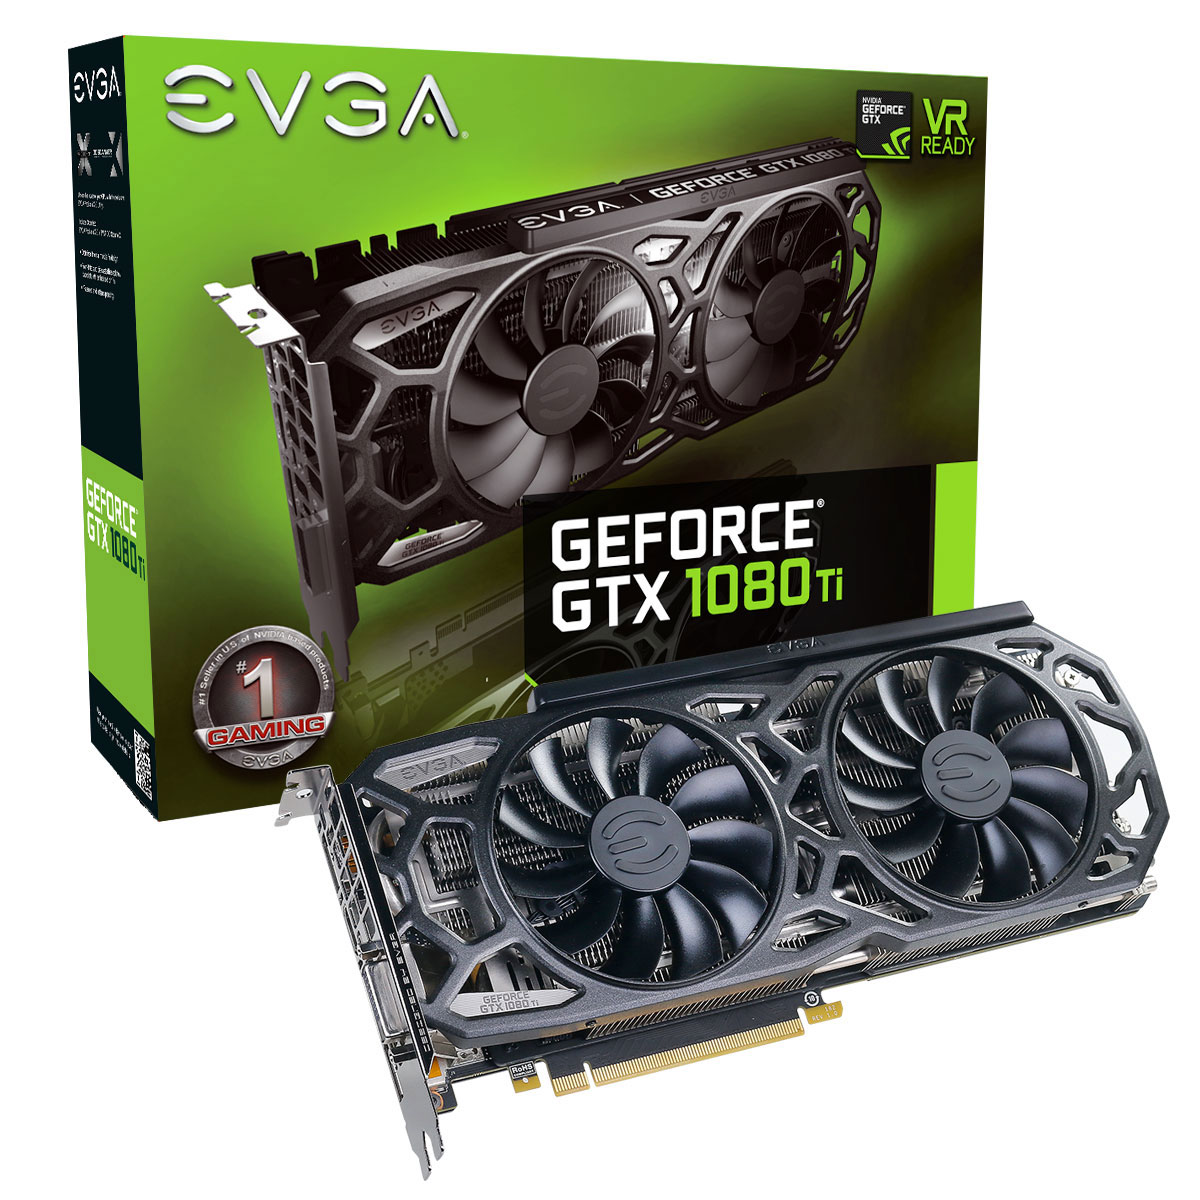 evga geforce gtx 1080 ti sc black edition gaming carte graphique evga sur. Black Bedroom Furniture Sets. Home Design Ideas